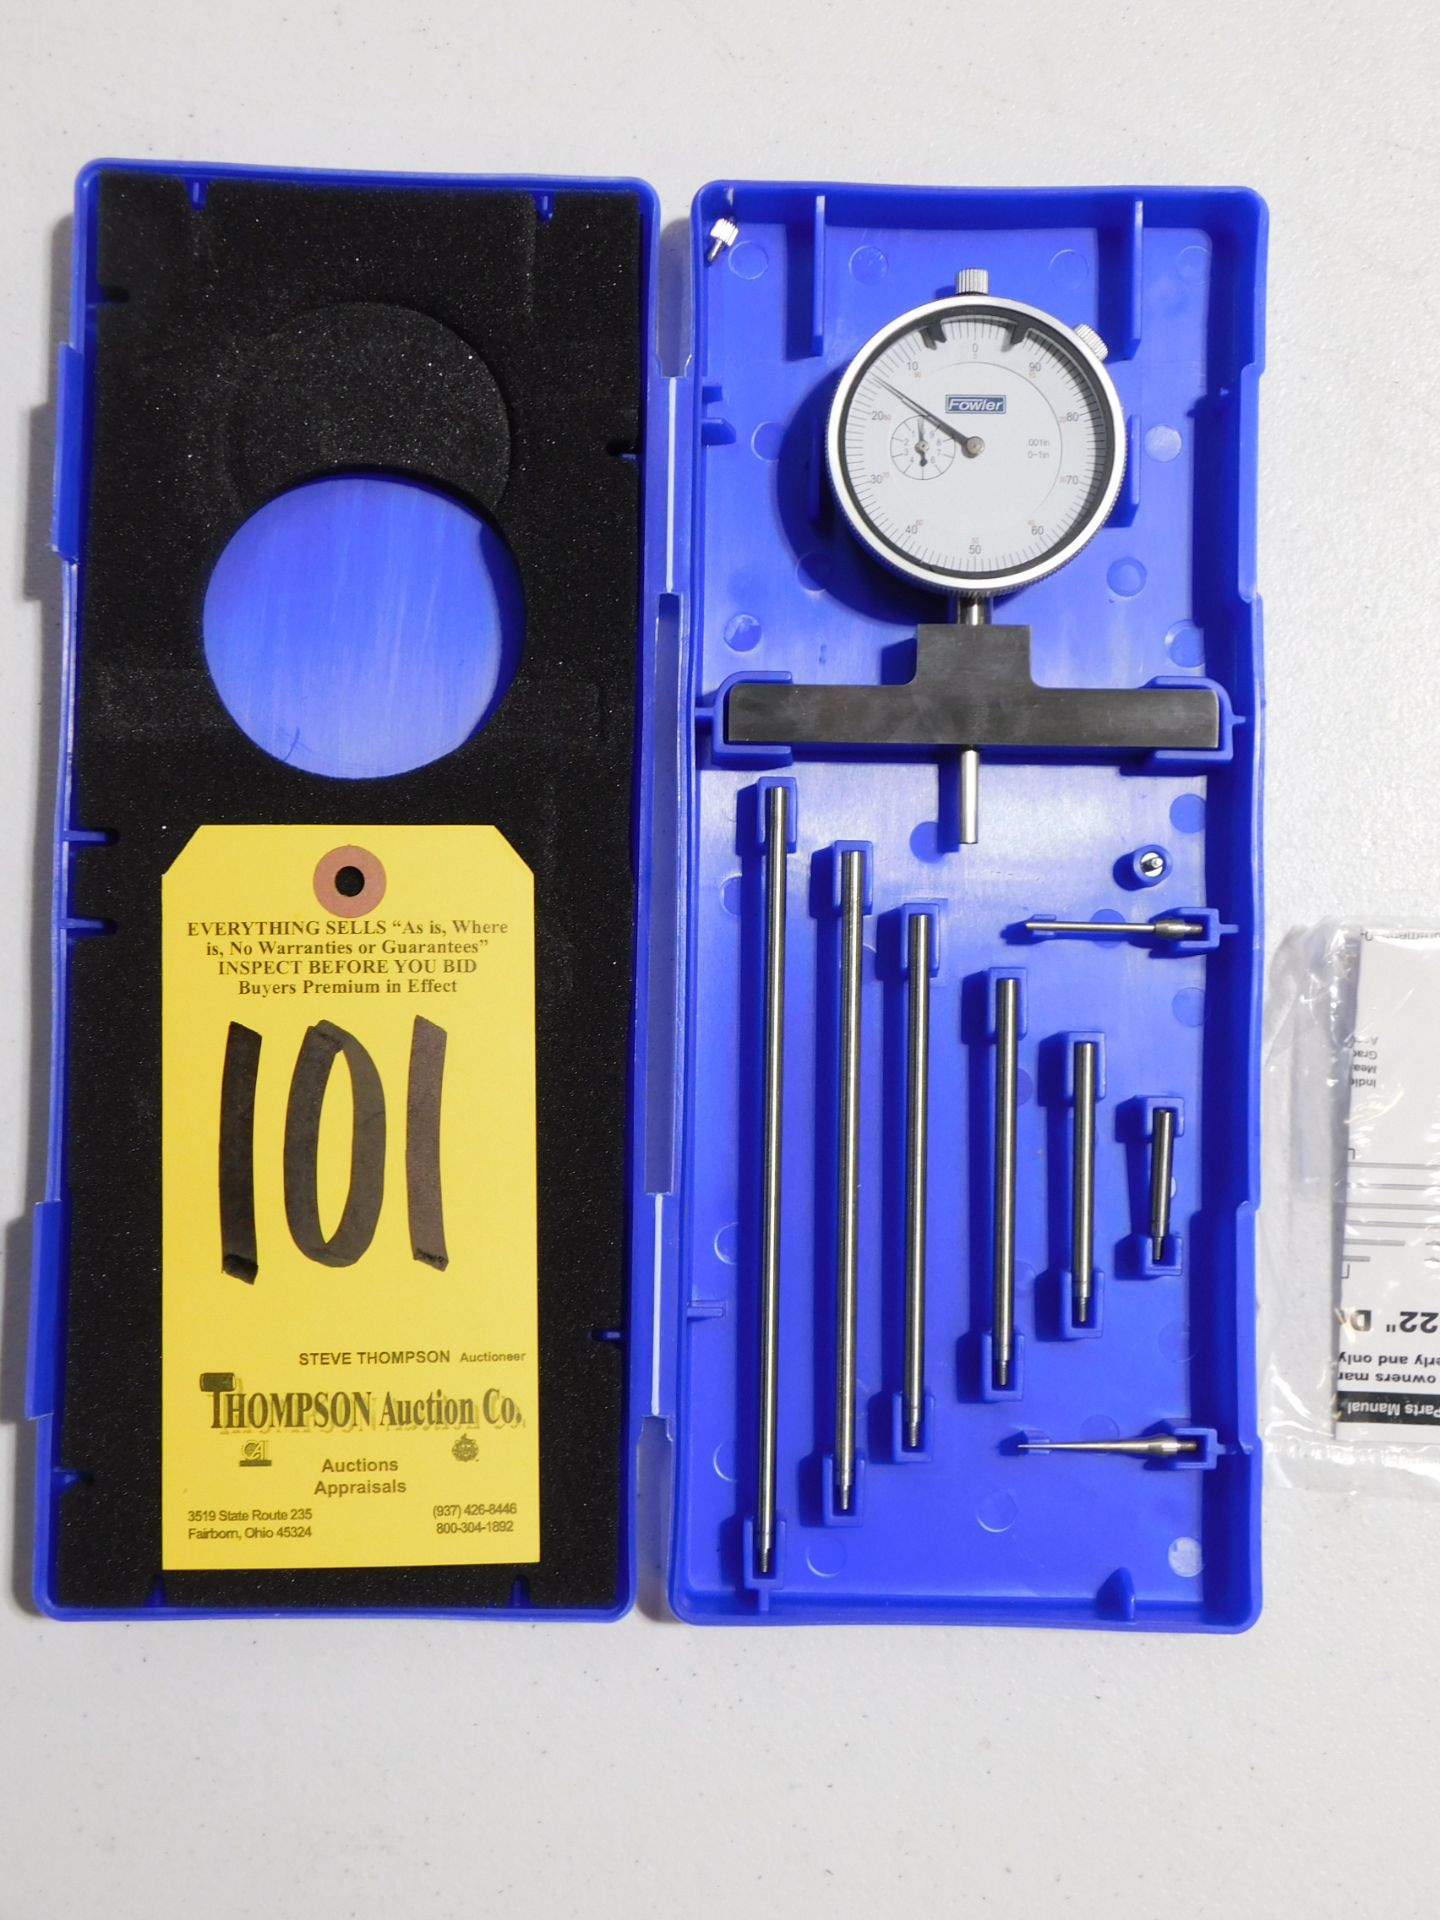 """Lot 101 - Fowler Dial Depth Gage, 0-22"""", Lot Location 3204 Olympia Dr. A, Lafayette, IN 47909"""